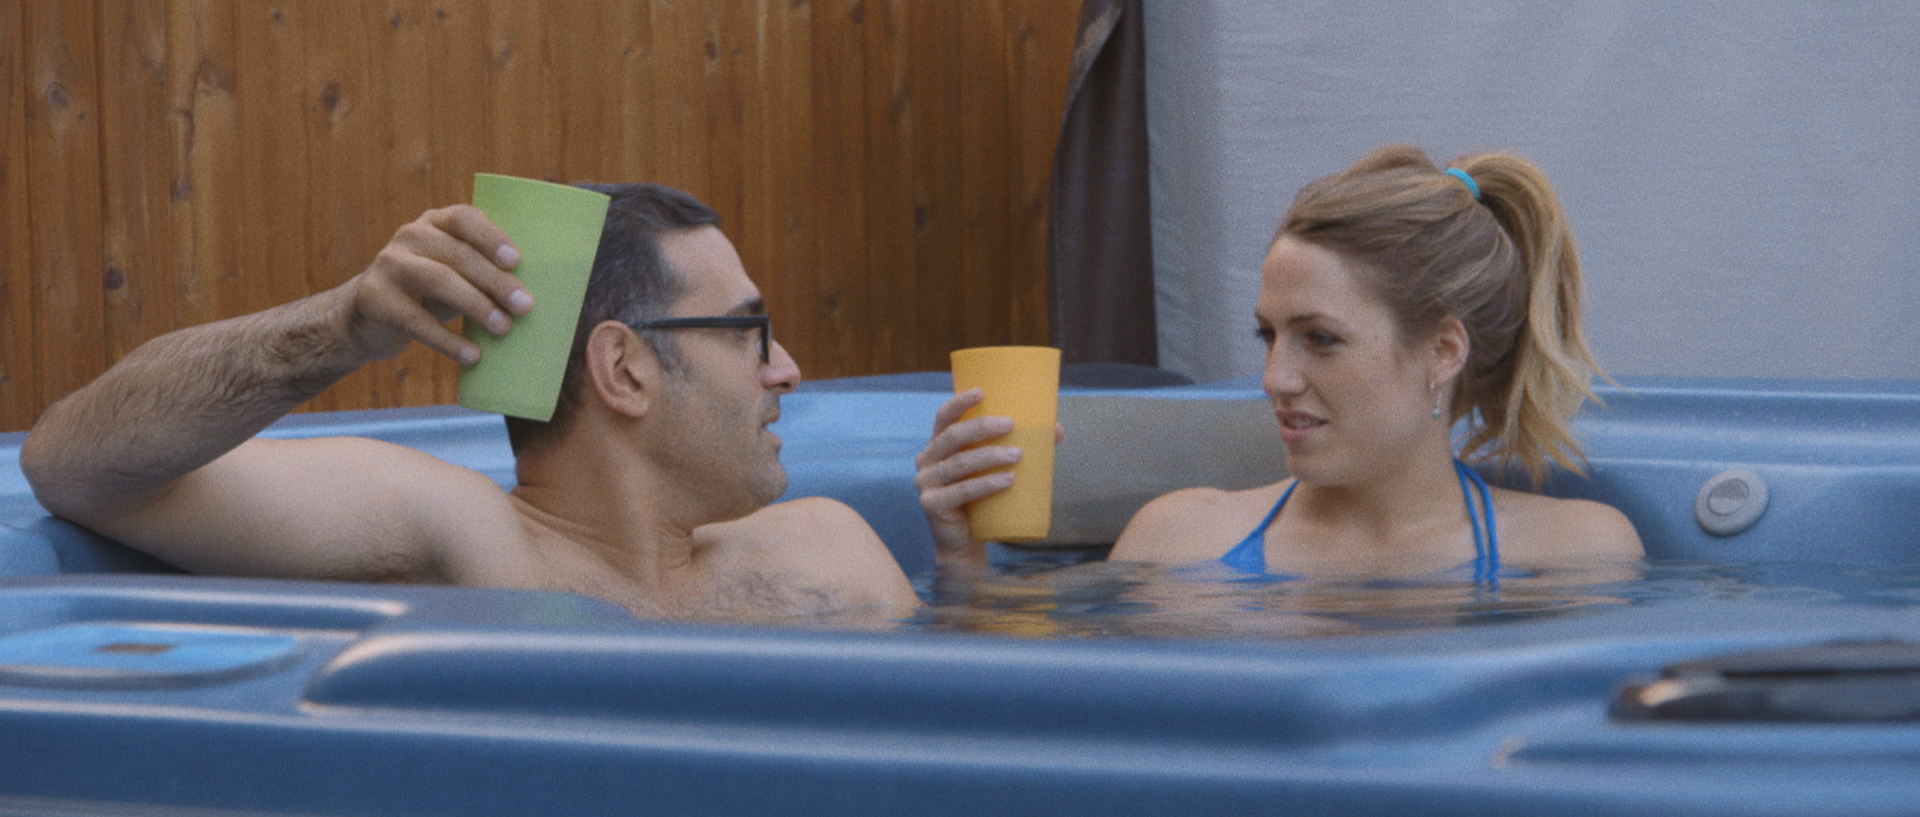 L to R: Robert D'Esposito as Anthony and Katie Michels as Sam. Image courtesy of Hunter Way Pictures.